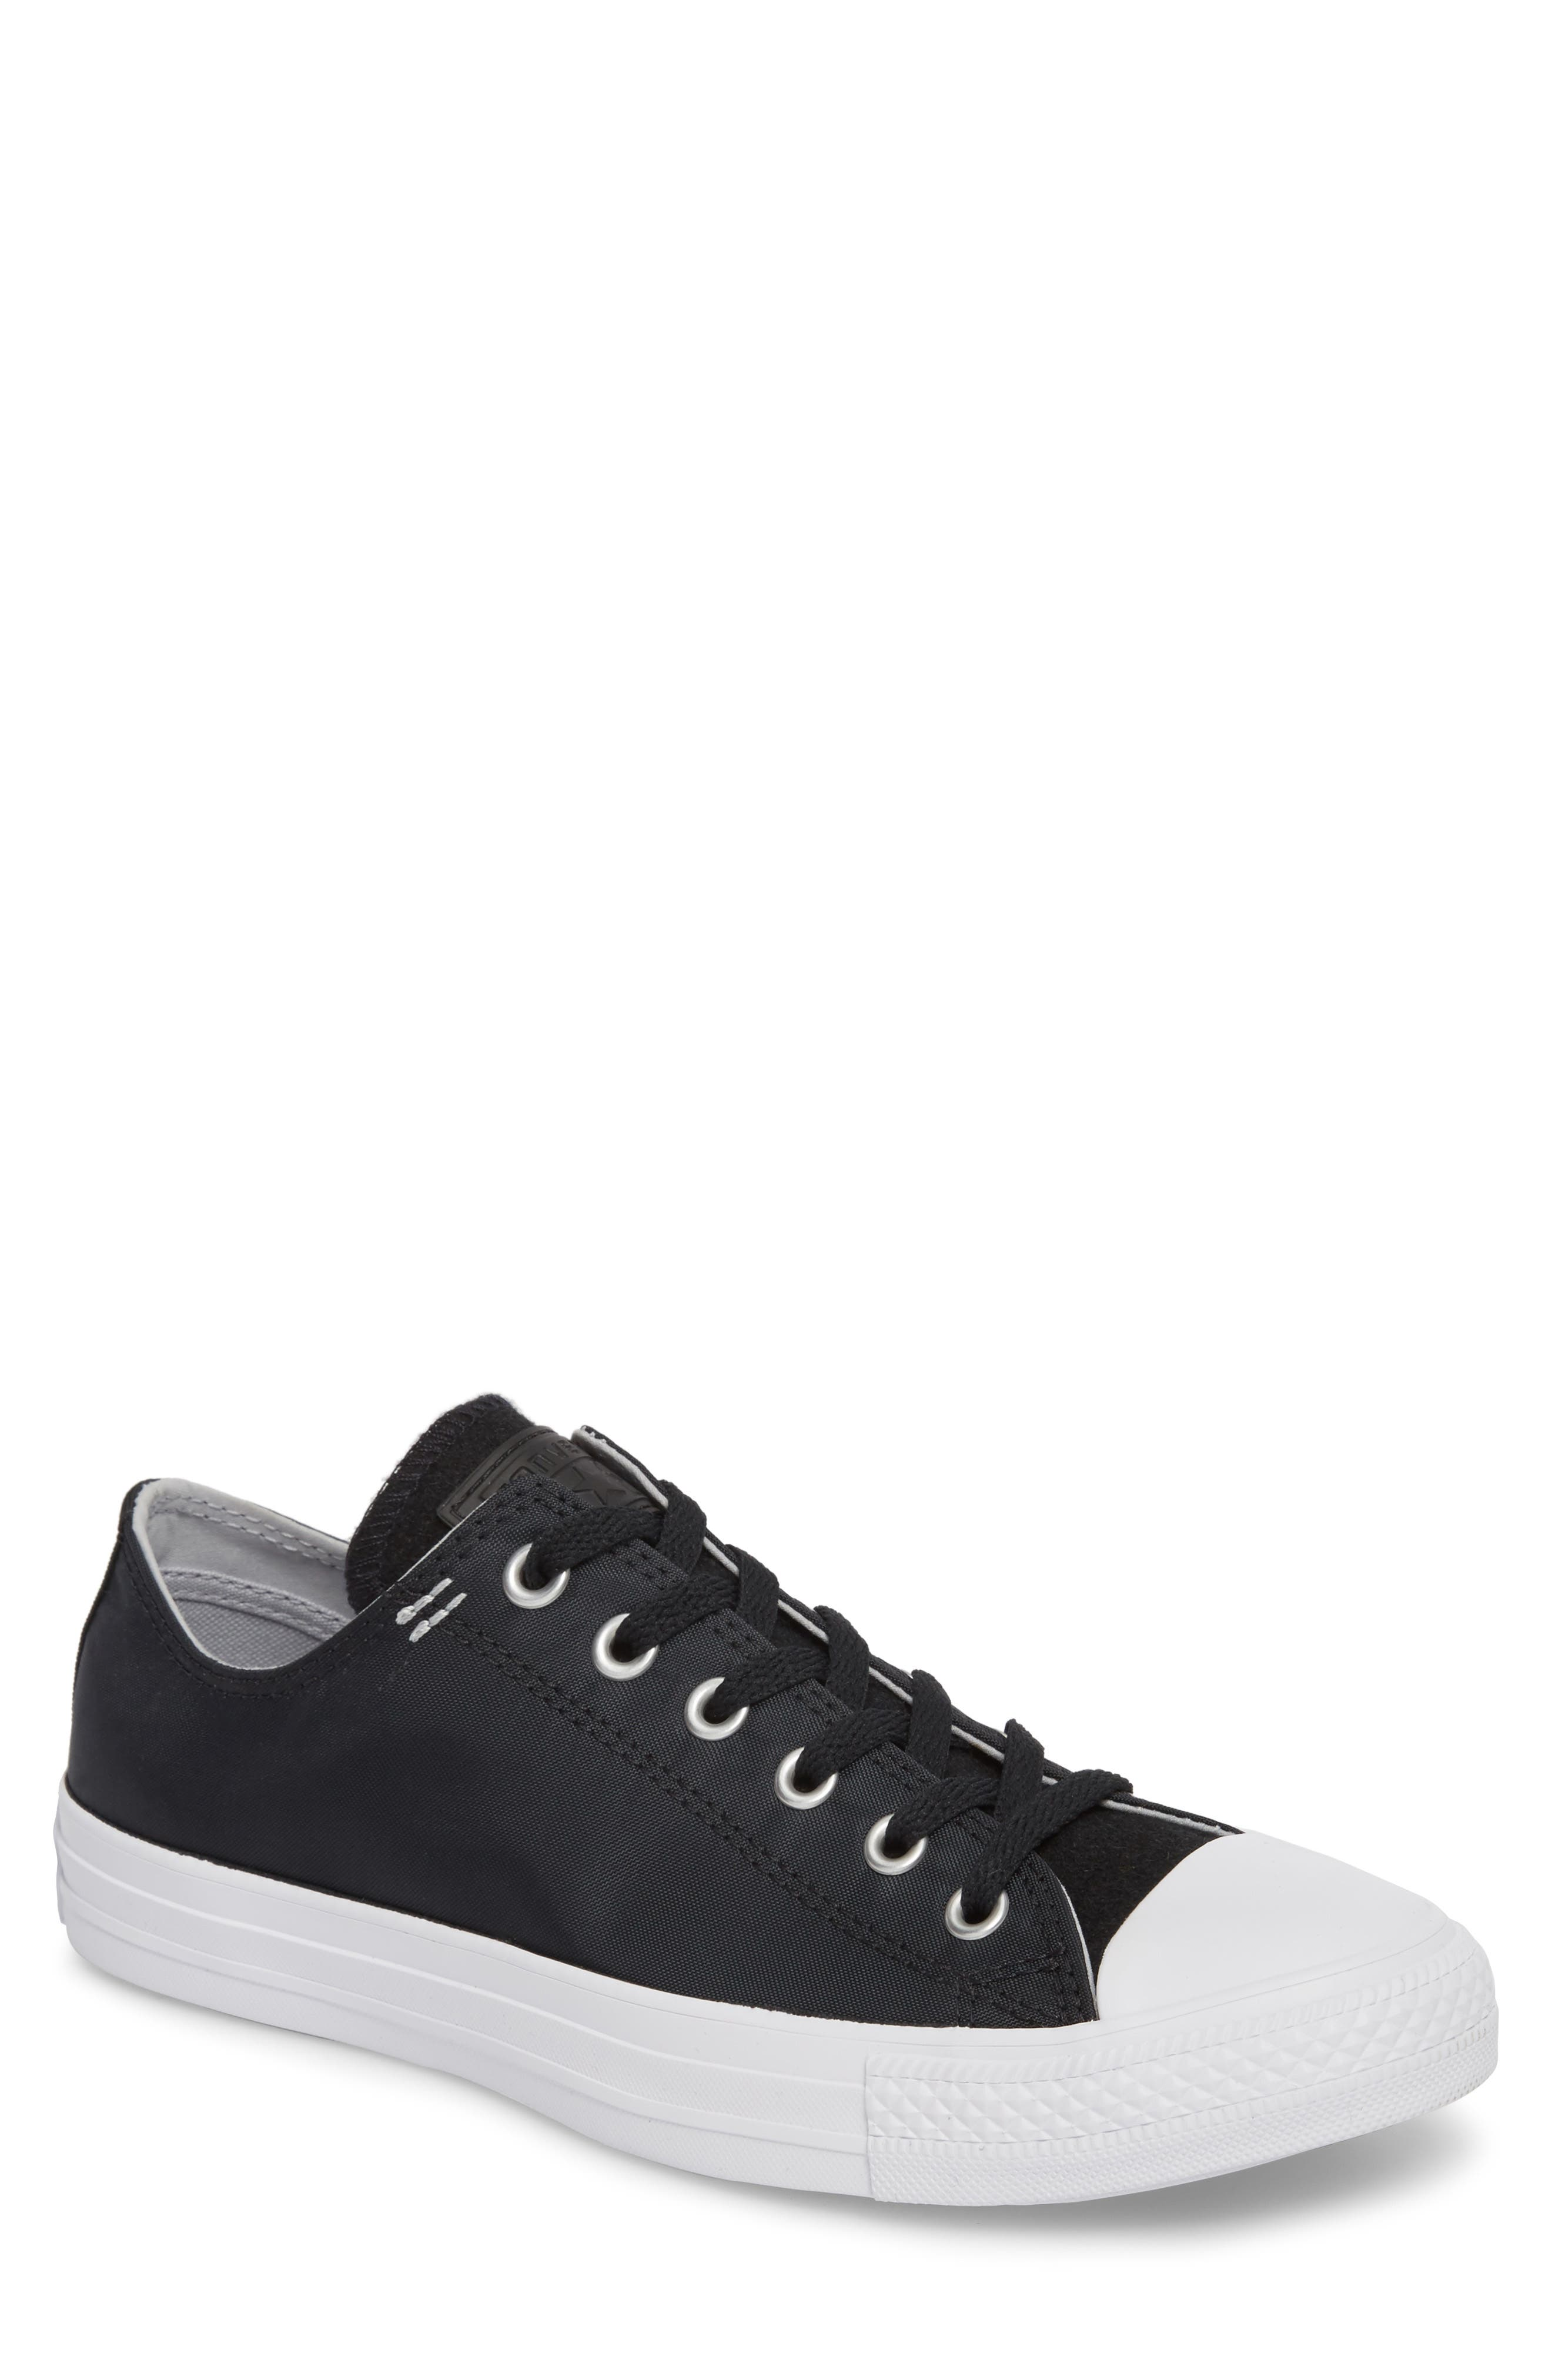 All Star<sup>®</sup> OX Low Top Sneaker,                         Main,                         color, Black